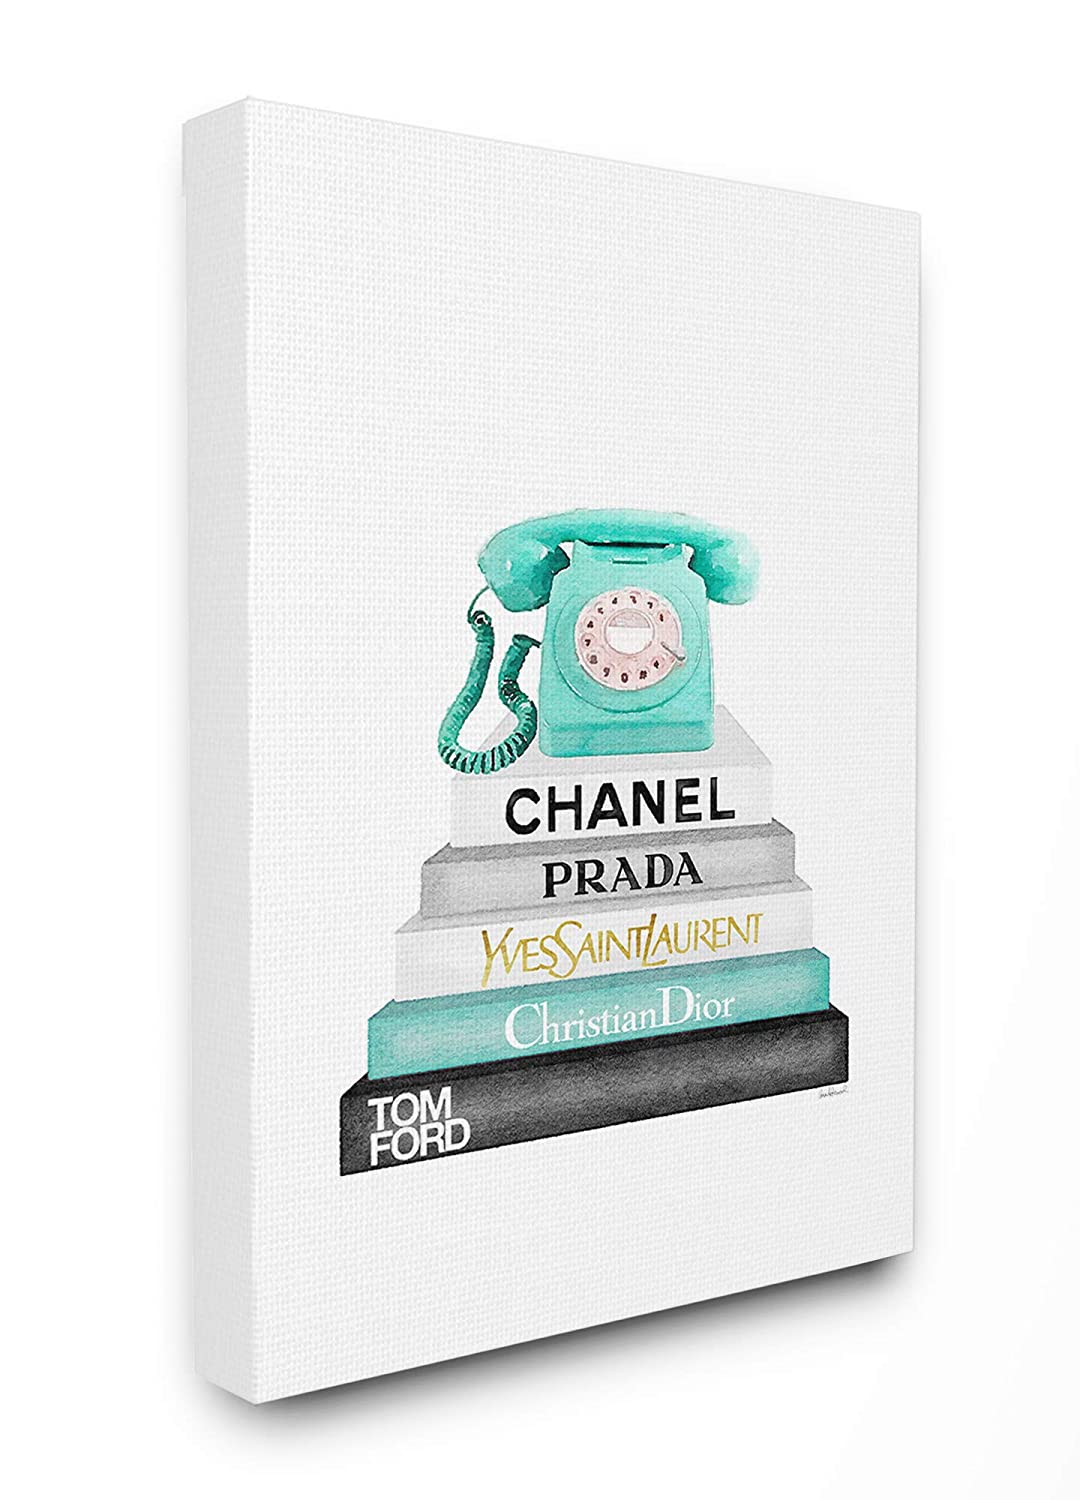 11 x 14 The Stupell Home Decor Grey Black Fashion Bookstack with Teal Phone Framed Giclee Texturized Art Multi-Color